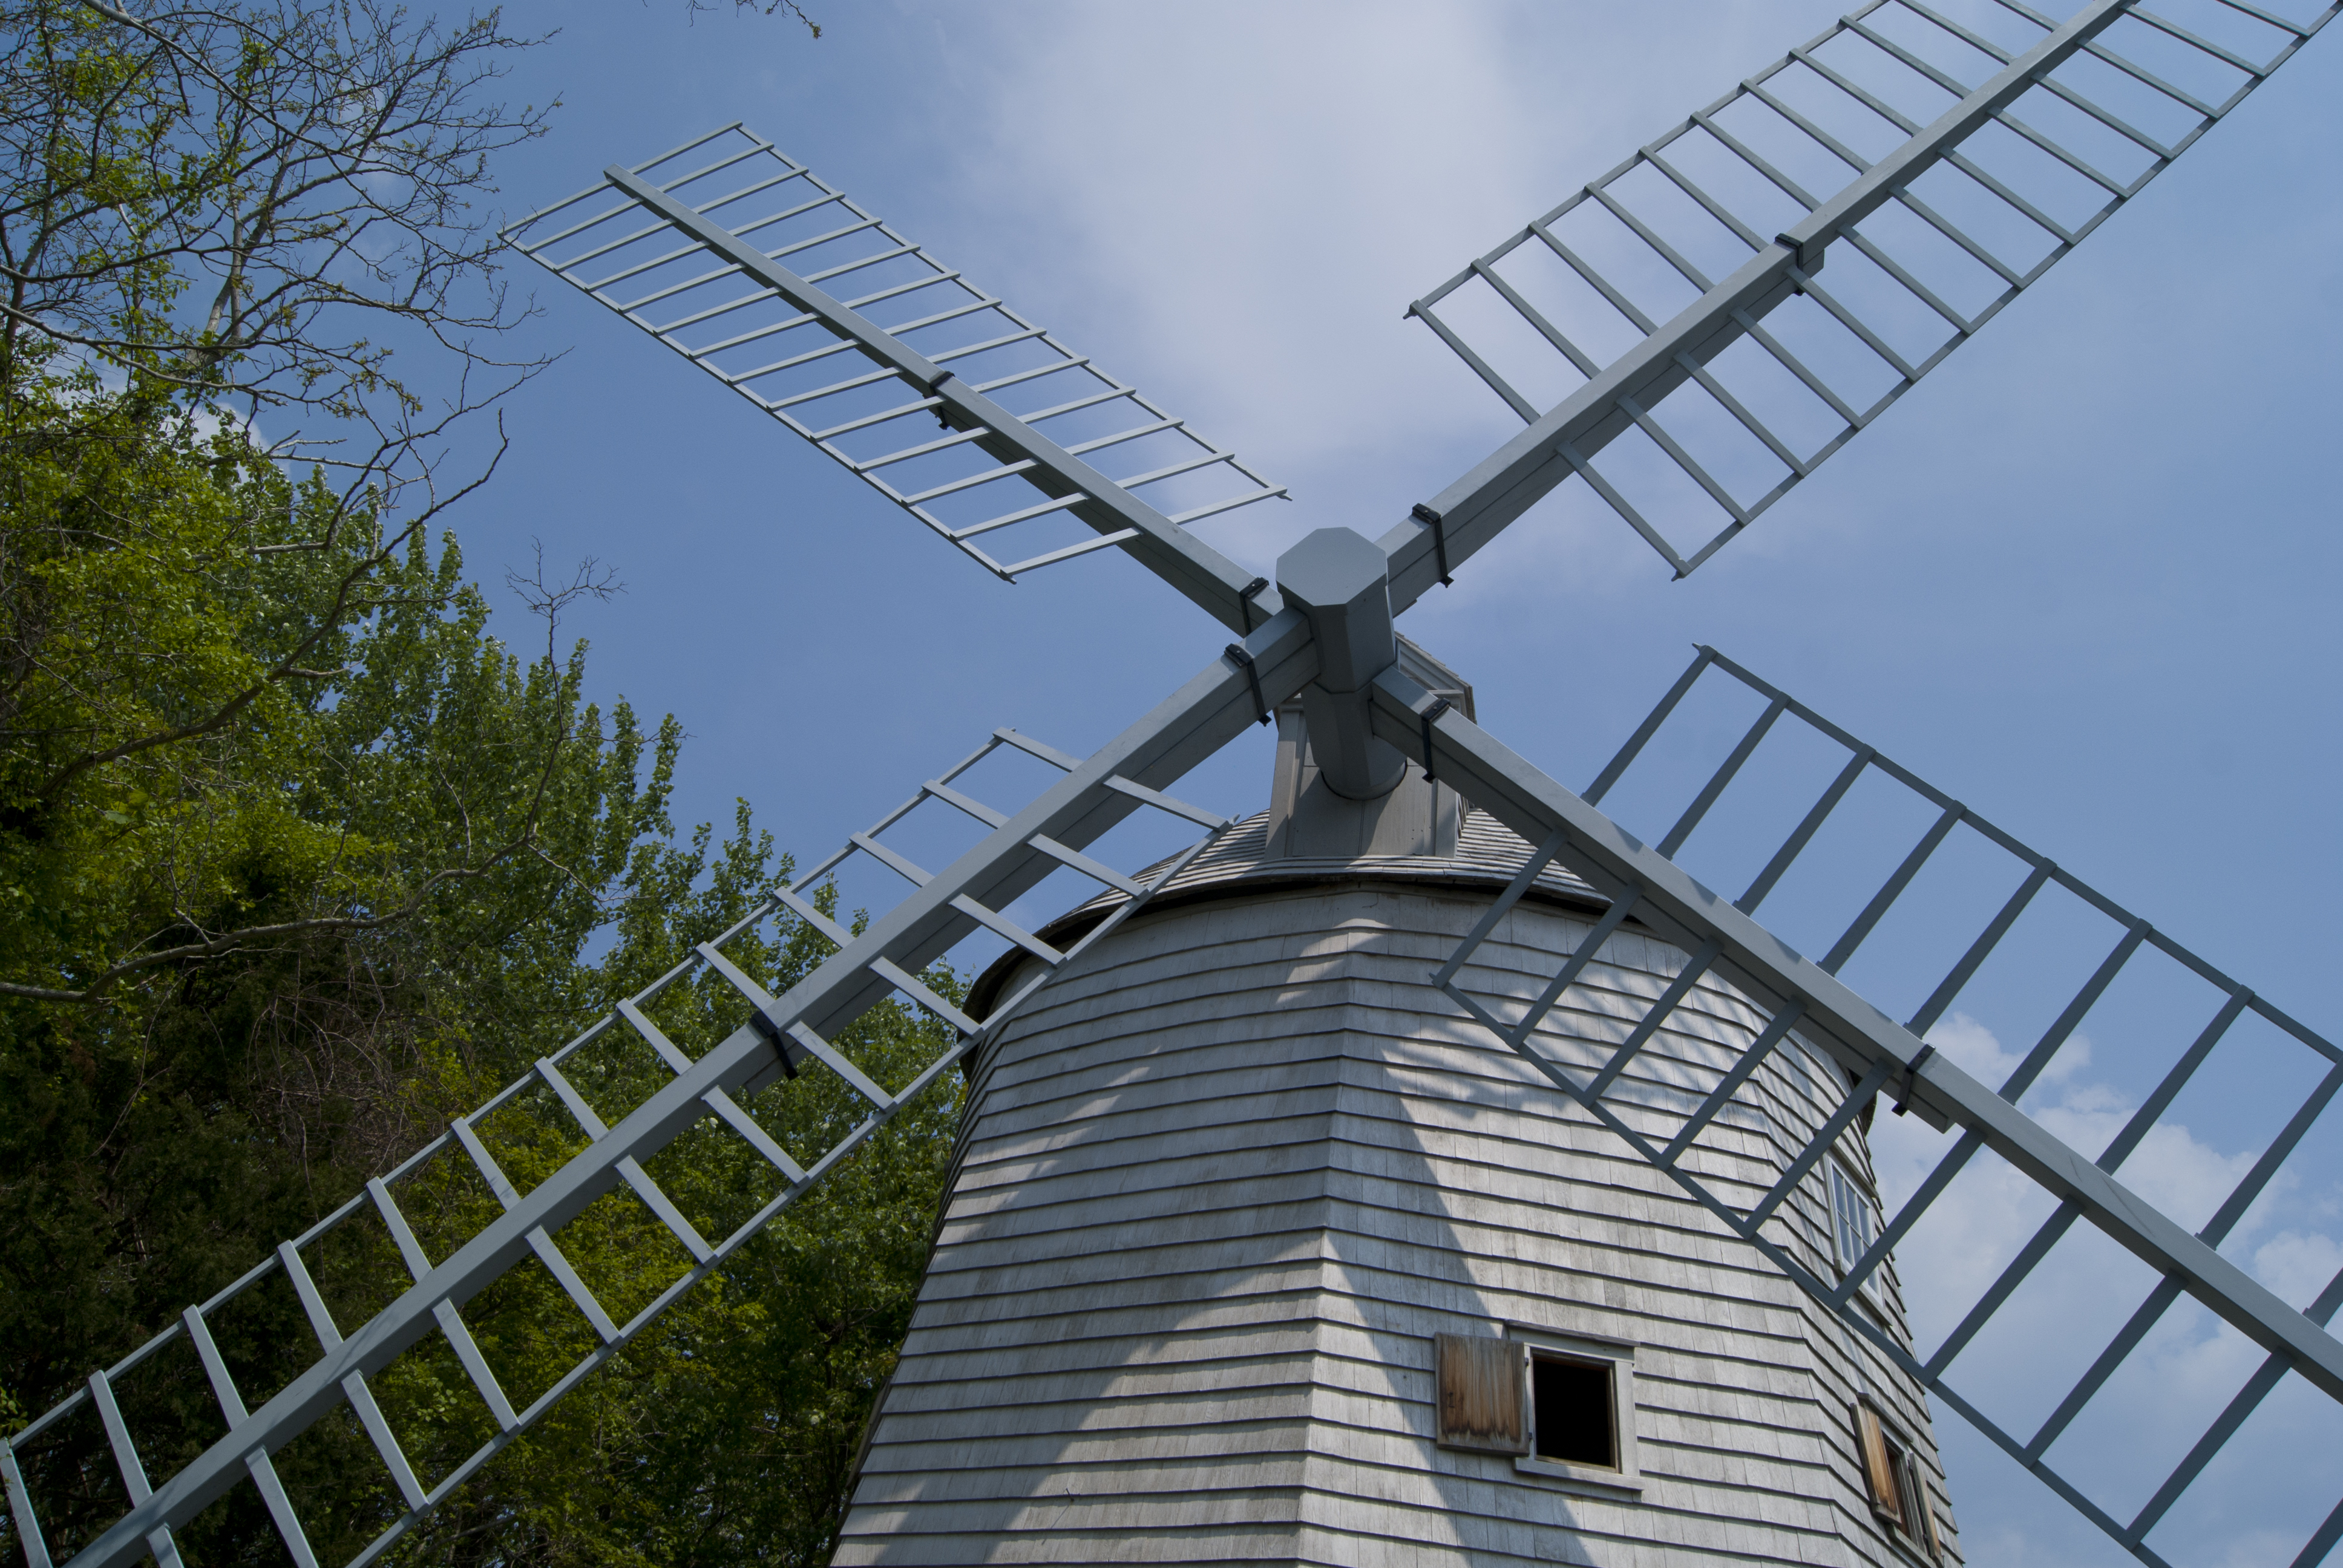 Old Windmill, Agriculture, Summer, Power, Retro, HQ Photo